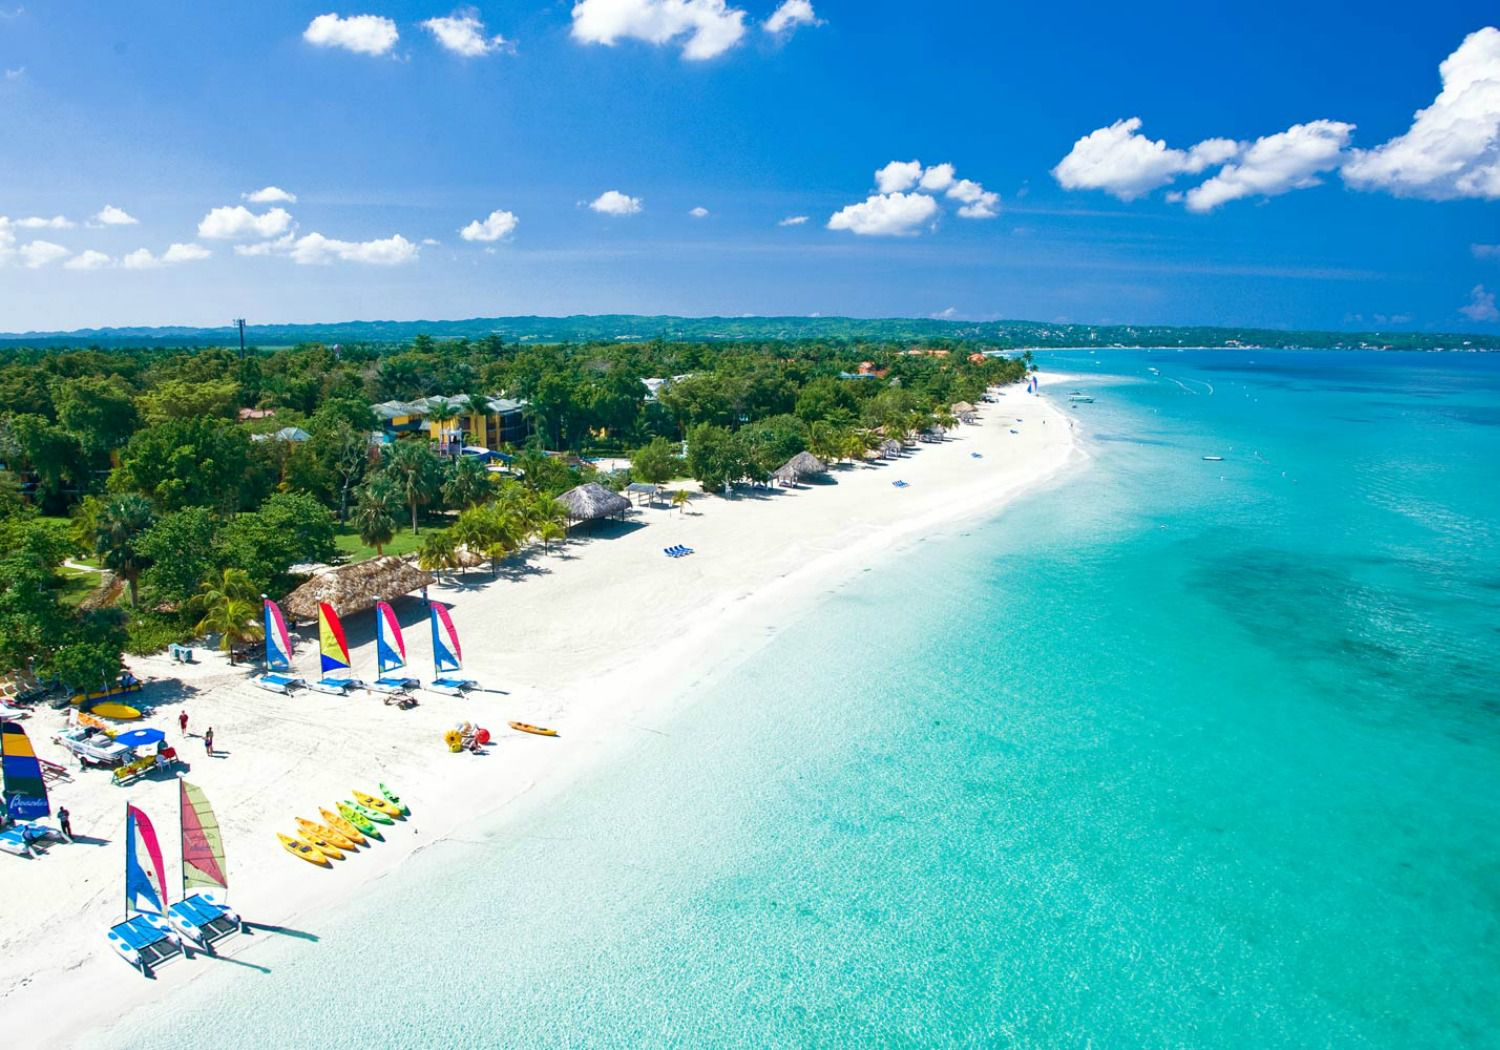 Beaches Negril in Jamaica